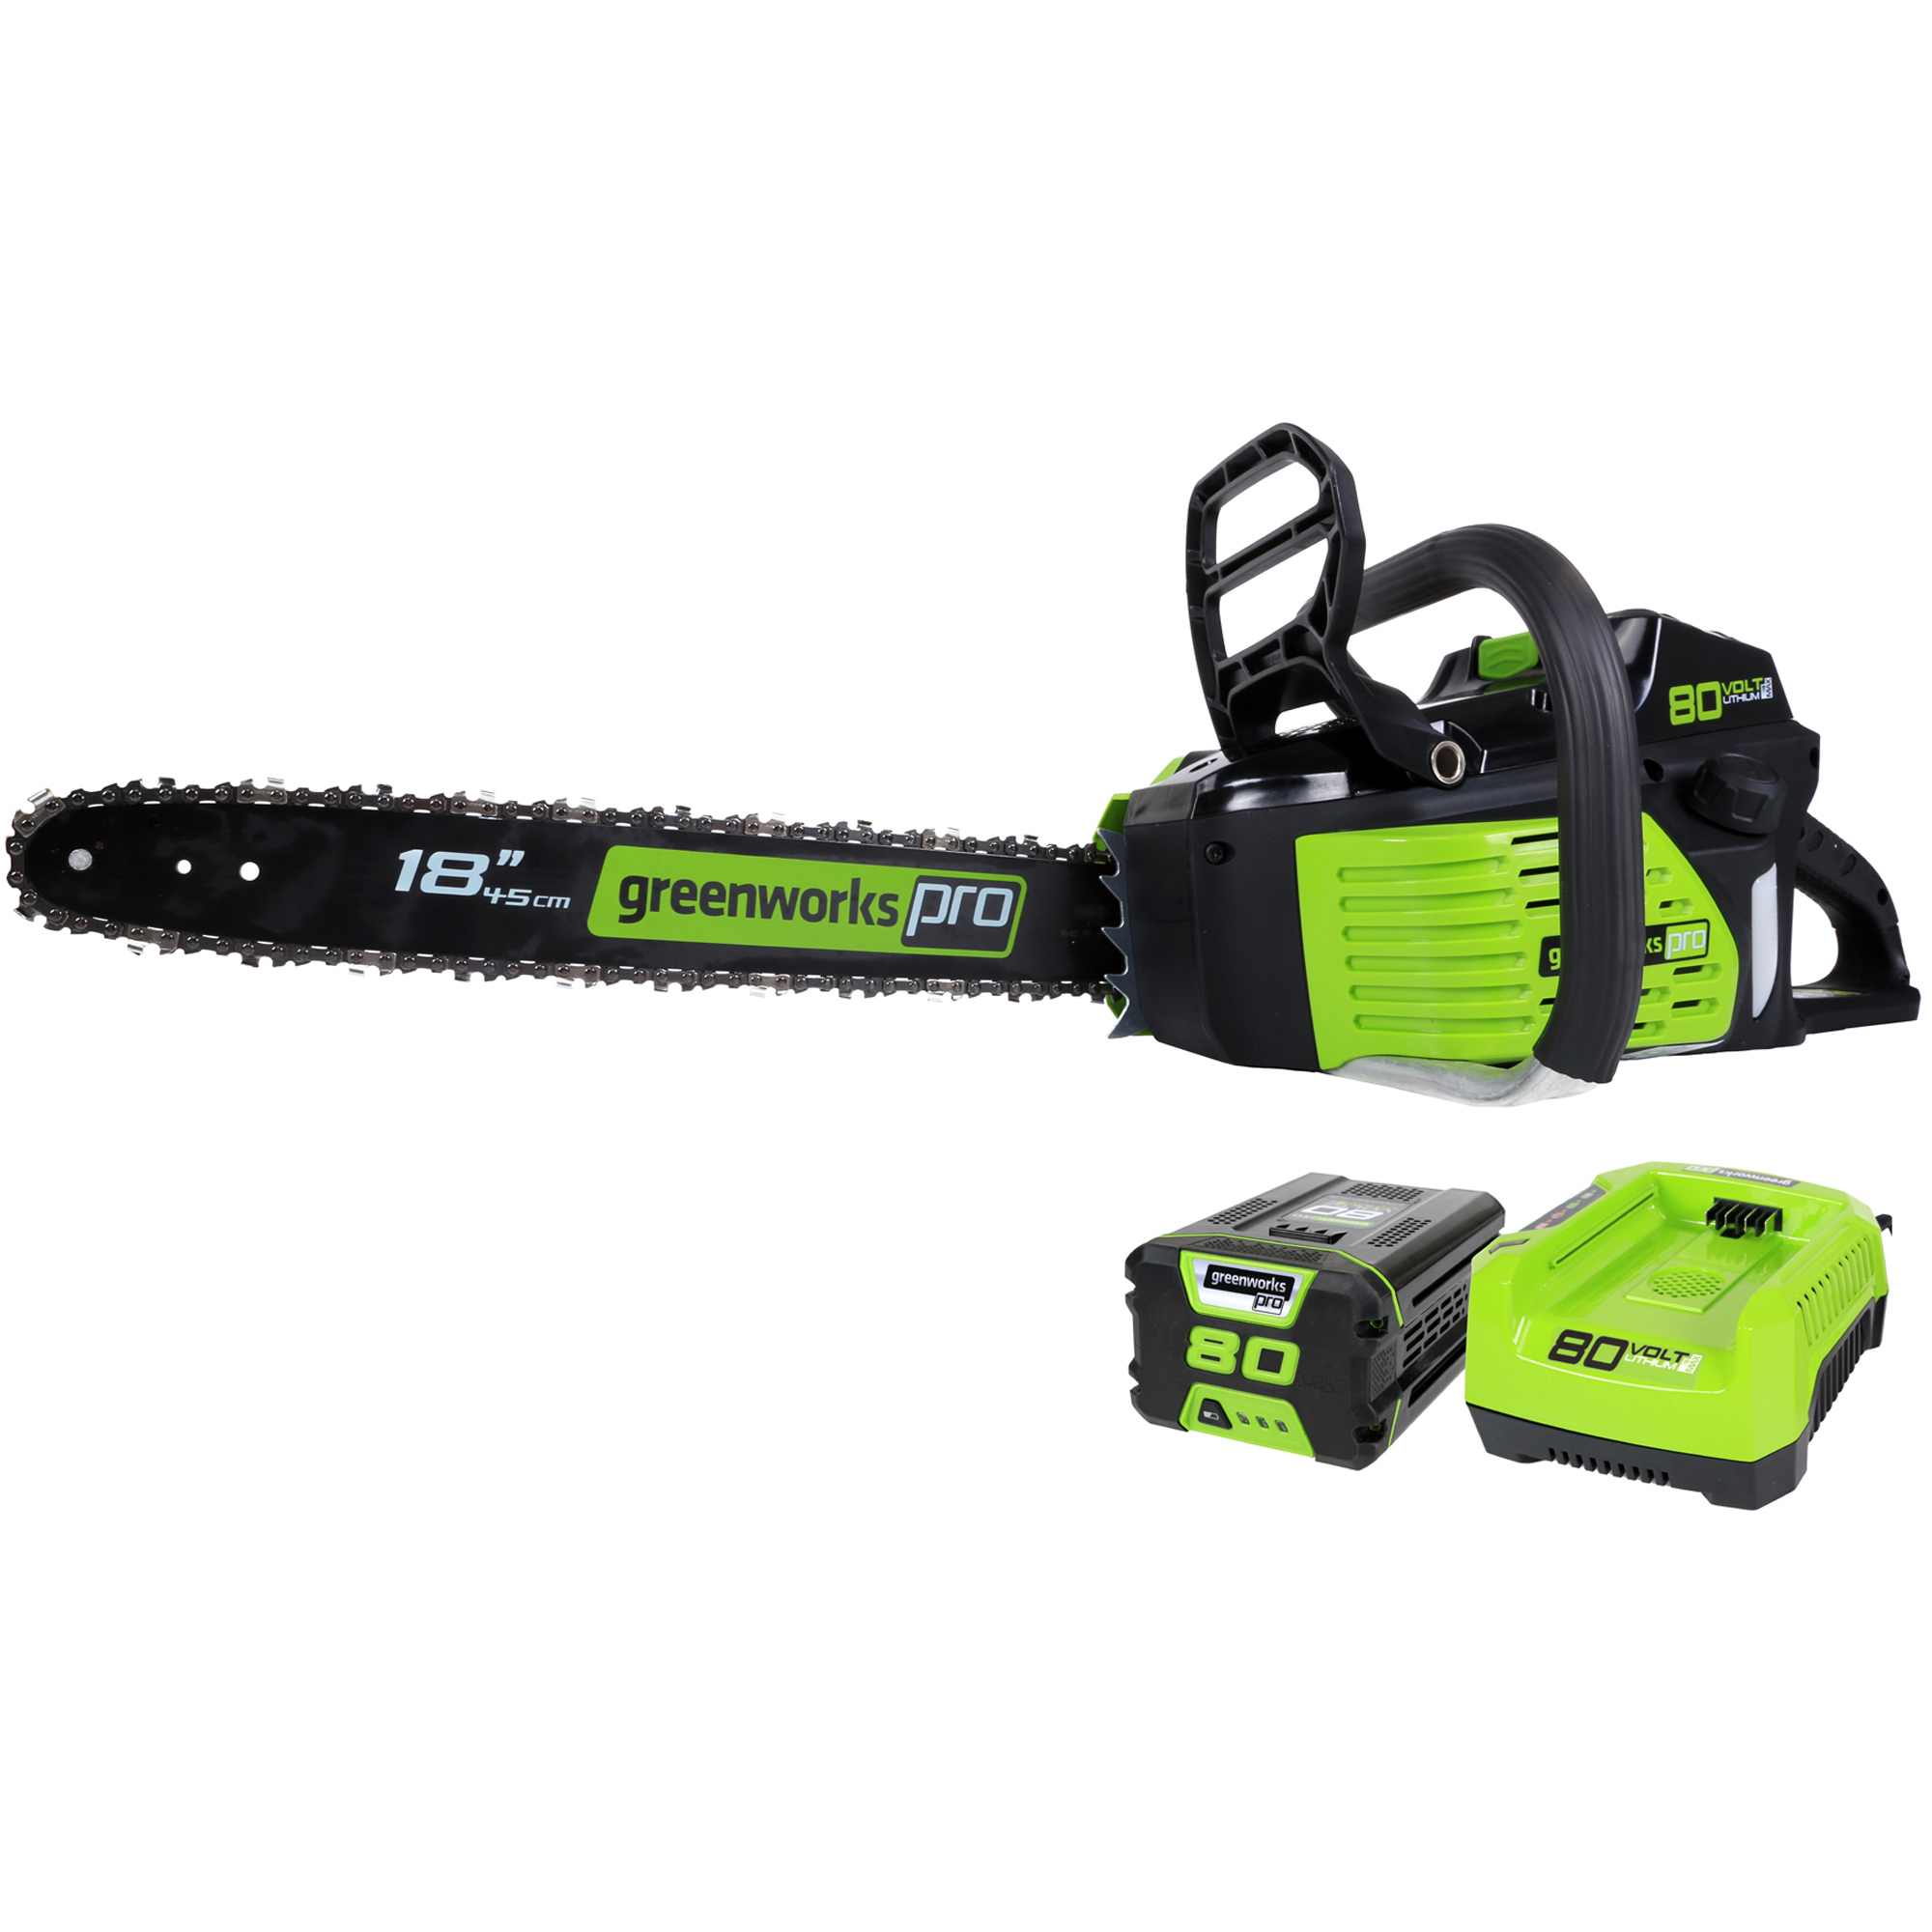 """GreenWorks GCS80420 80-Volt 18"""" Cordless Chainsaw, Includes 2.0AH Li-Ion Battery and Charger"""